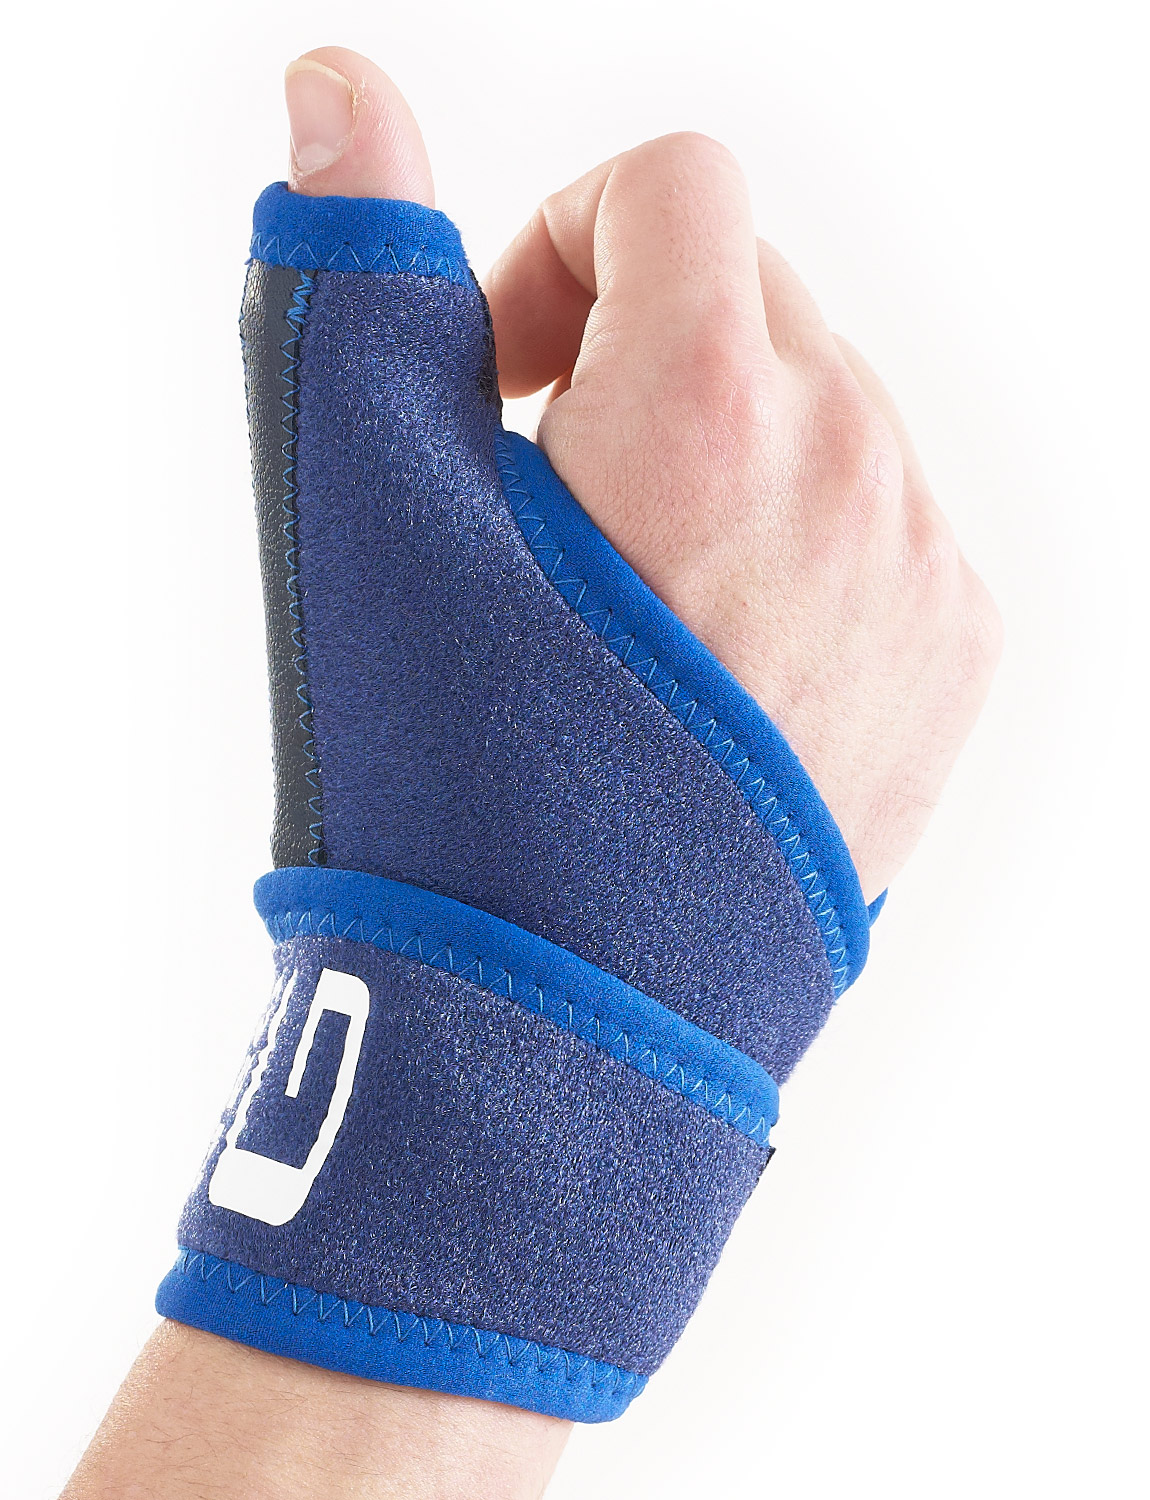 880 - THUMB BRACE  It helps encourage the correct alignment of the carpal and thumb joints and helps with inflammation and pain, from joint overuse.